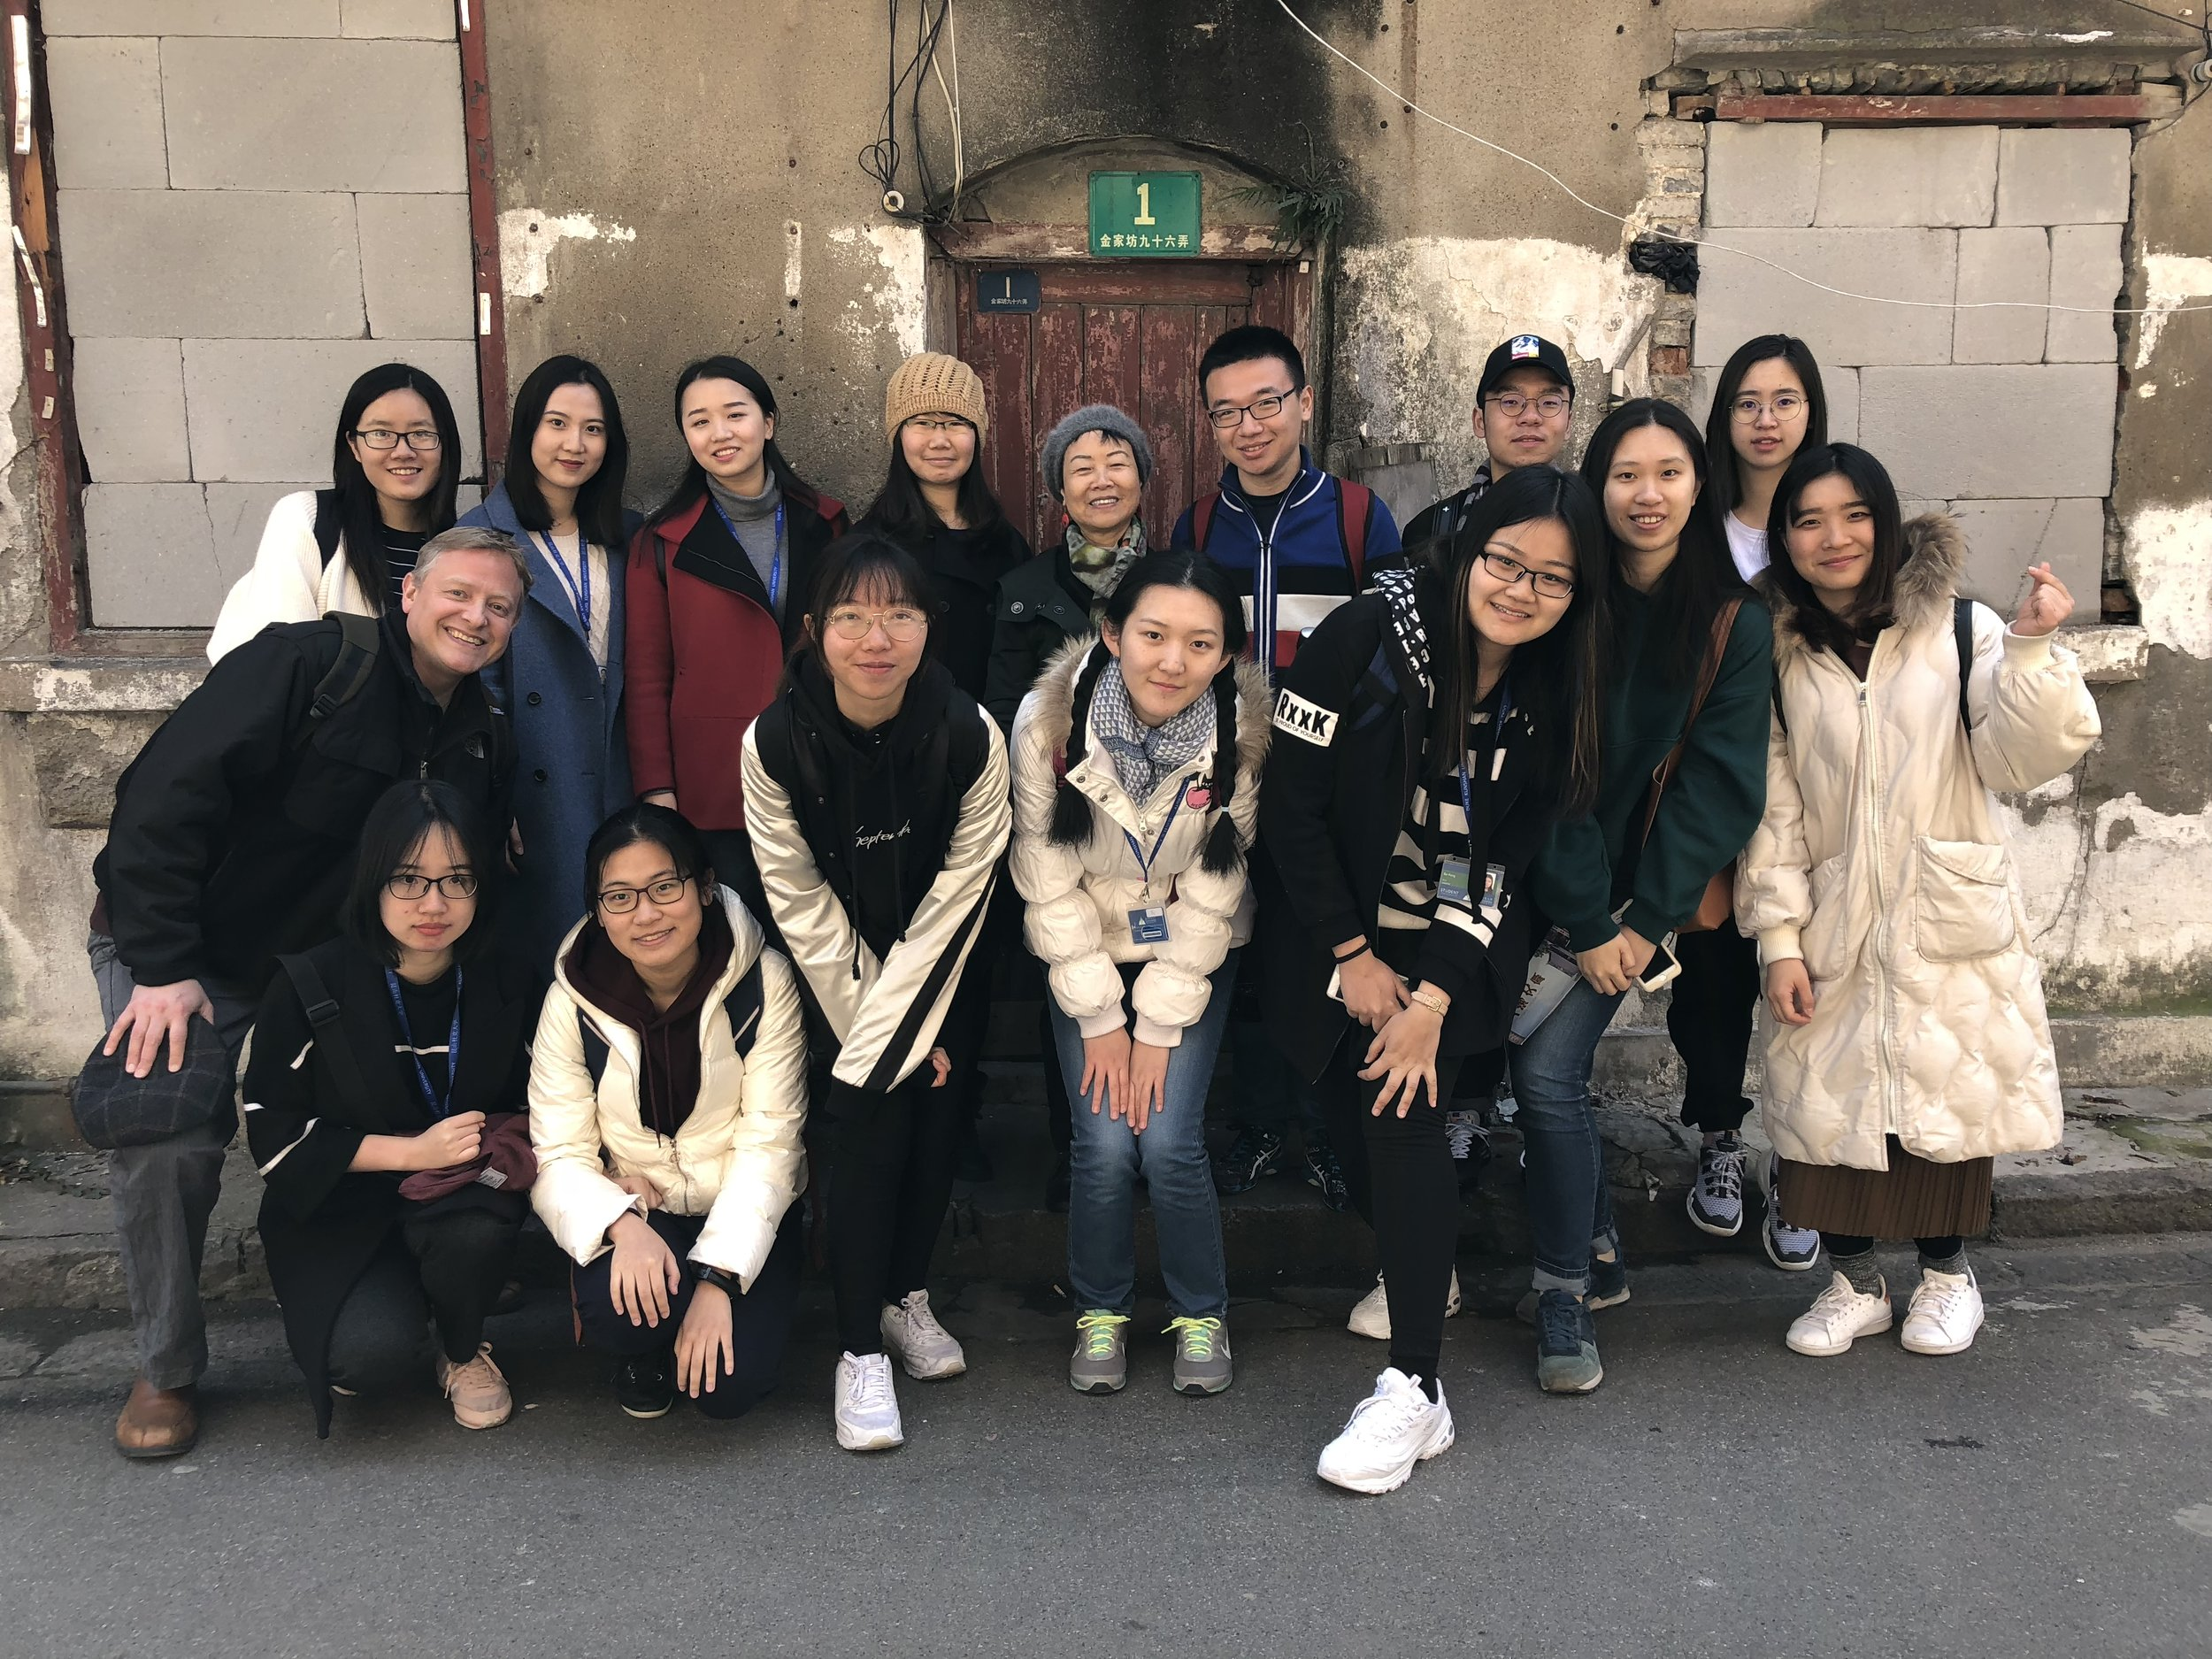 posing with students and Dr Qin Shao in the old neighborhood alleyways of the area east of Lao Xi Men, sadly soon to be demolished